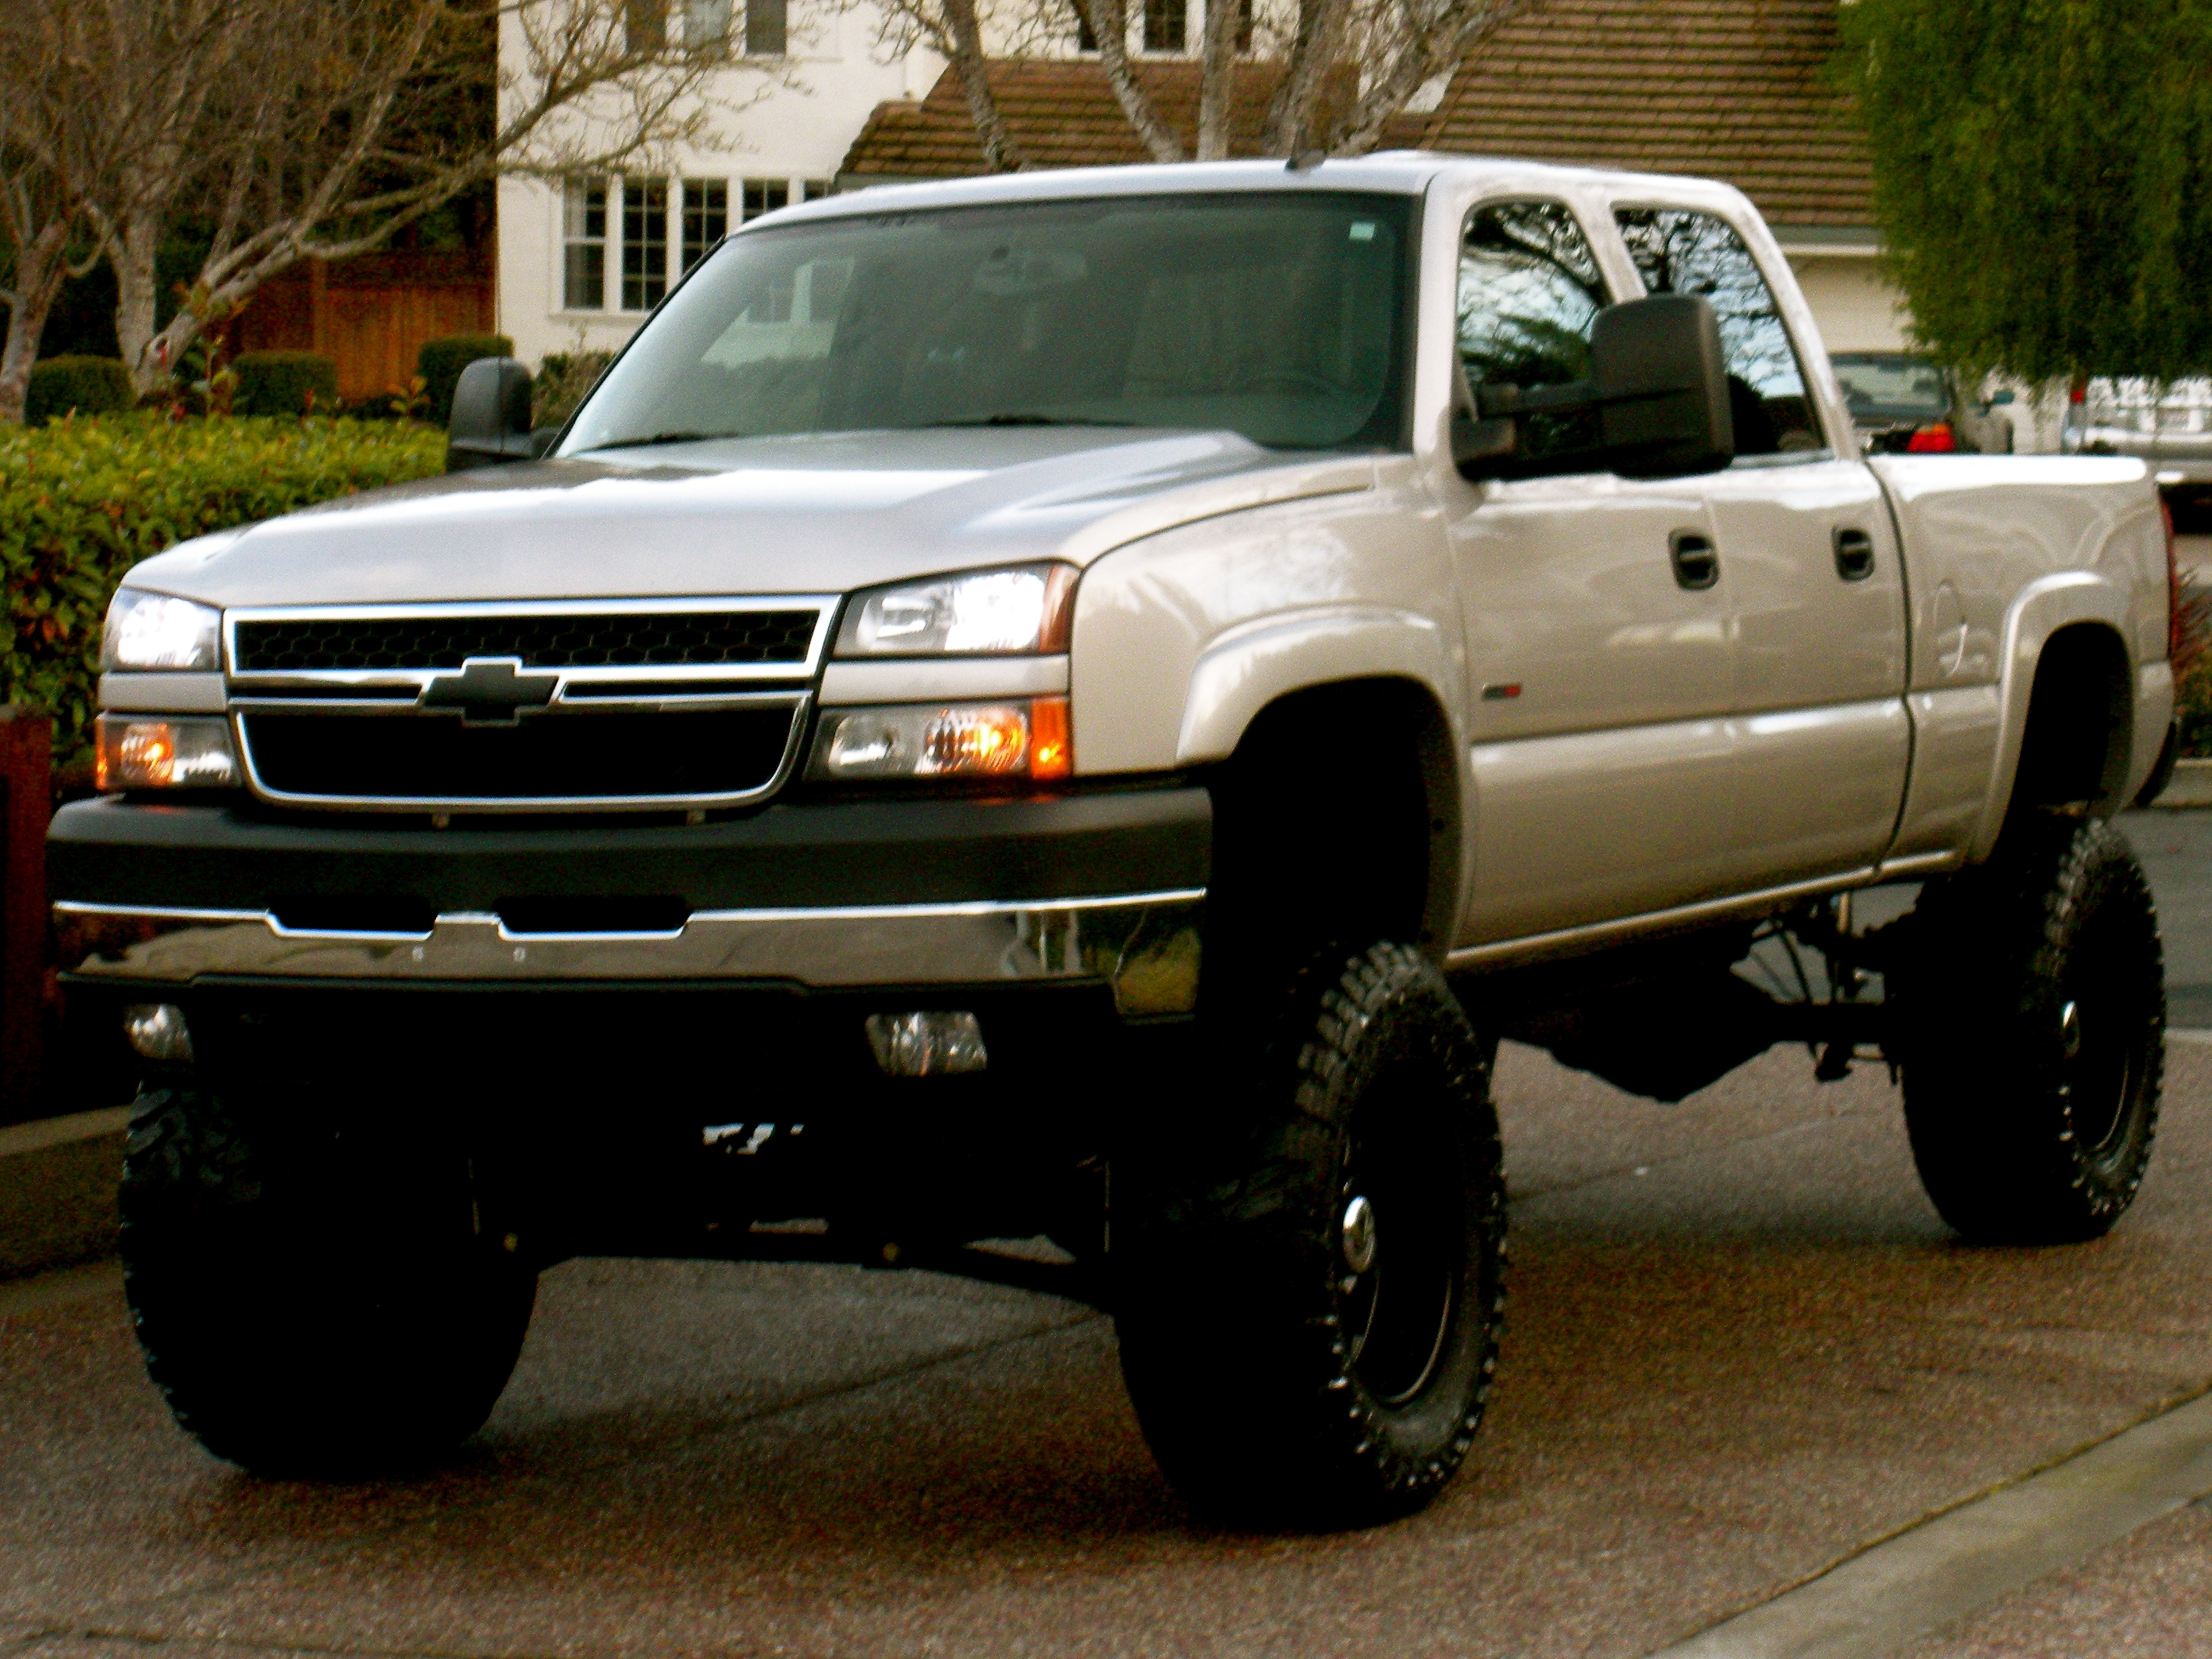 Another DIRTY*M@X 2006 Chevrolet Silverado 2500 HD Crew Cab post... - 13866028